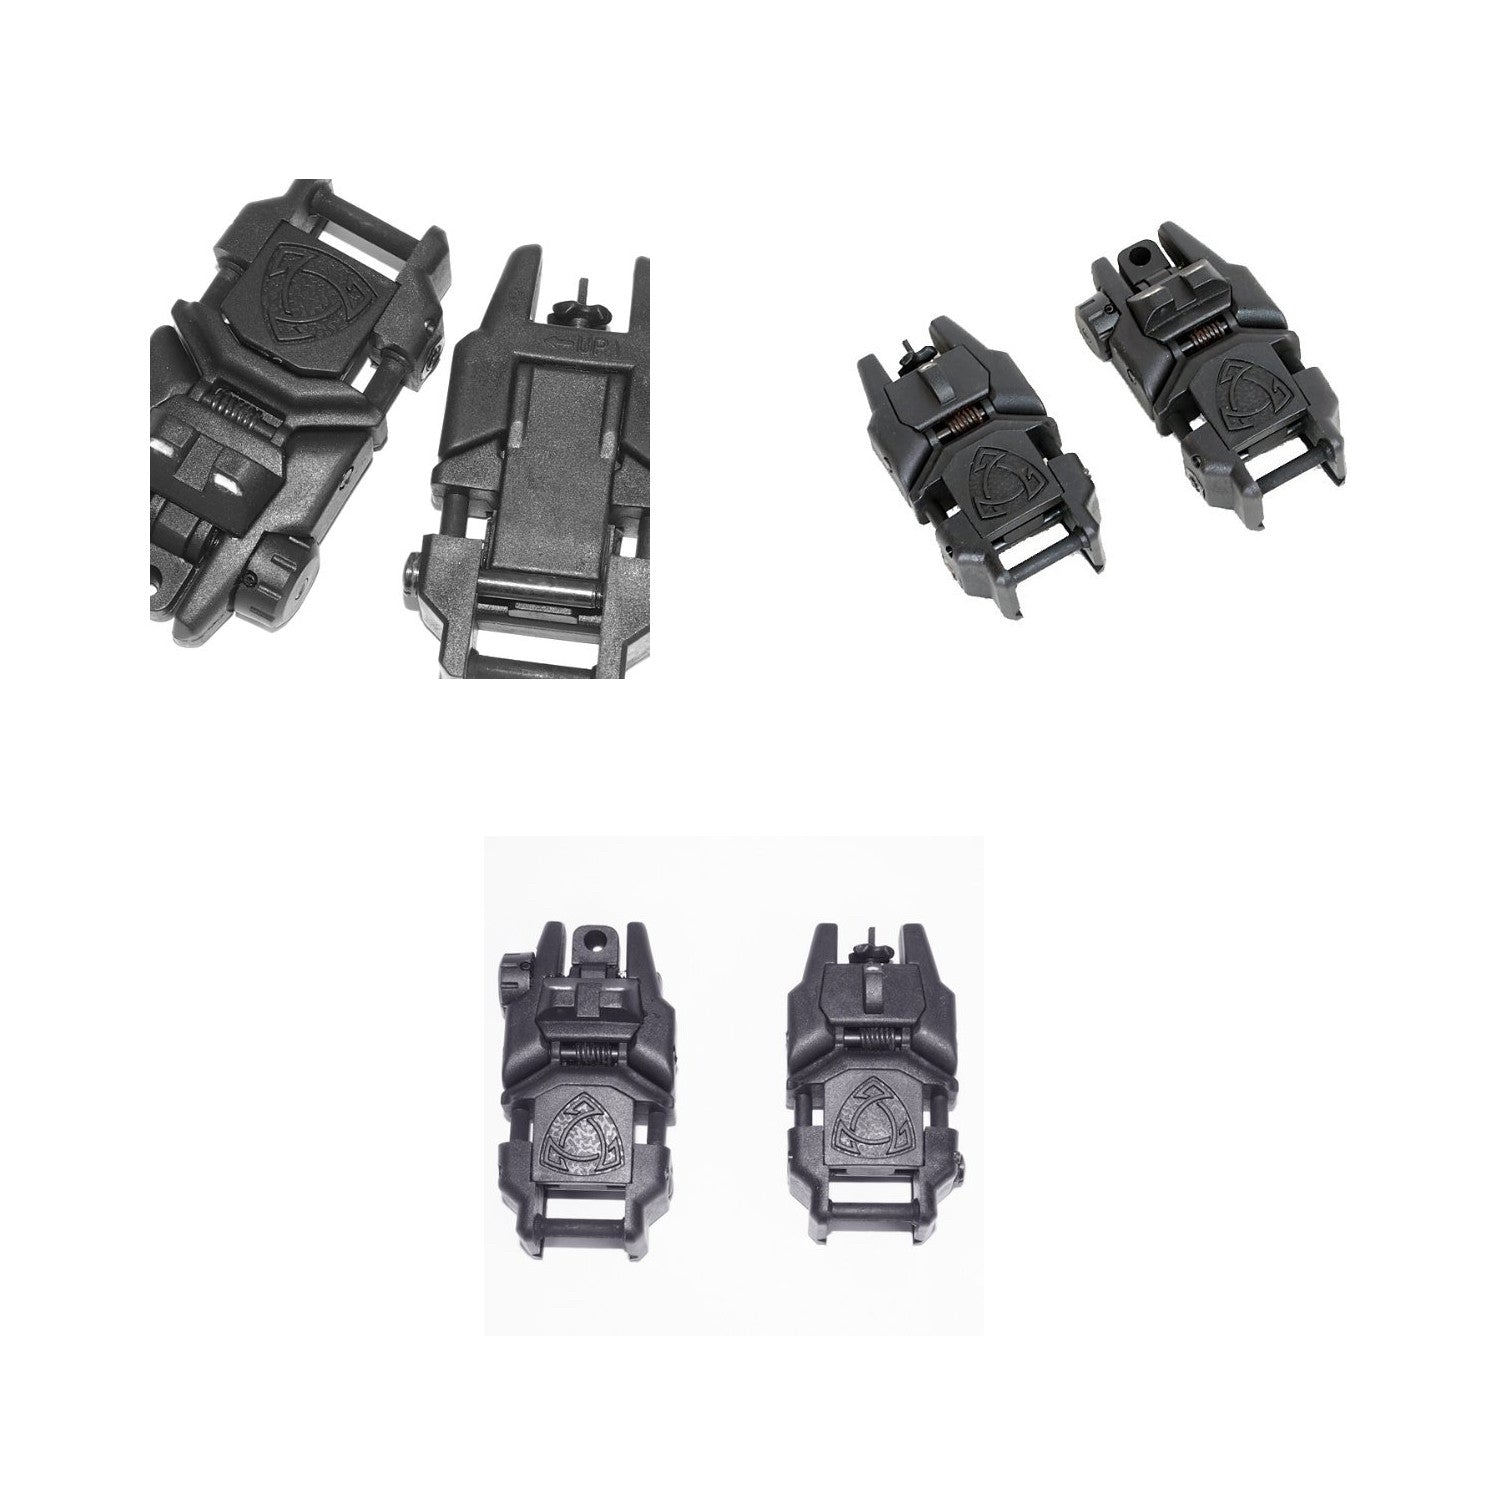 Magupuru MAGPUL PTS MBUS type backup site before and after set BK high quality replica M4/M16 (japan import)